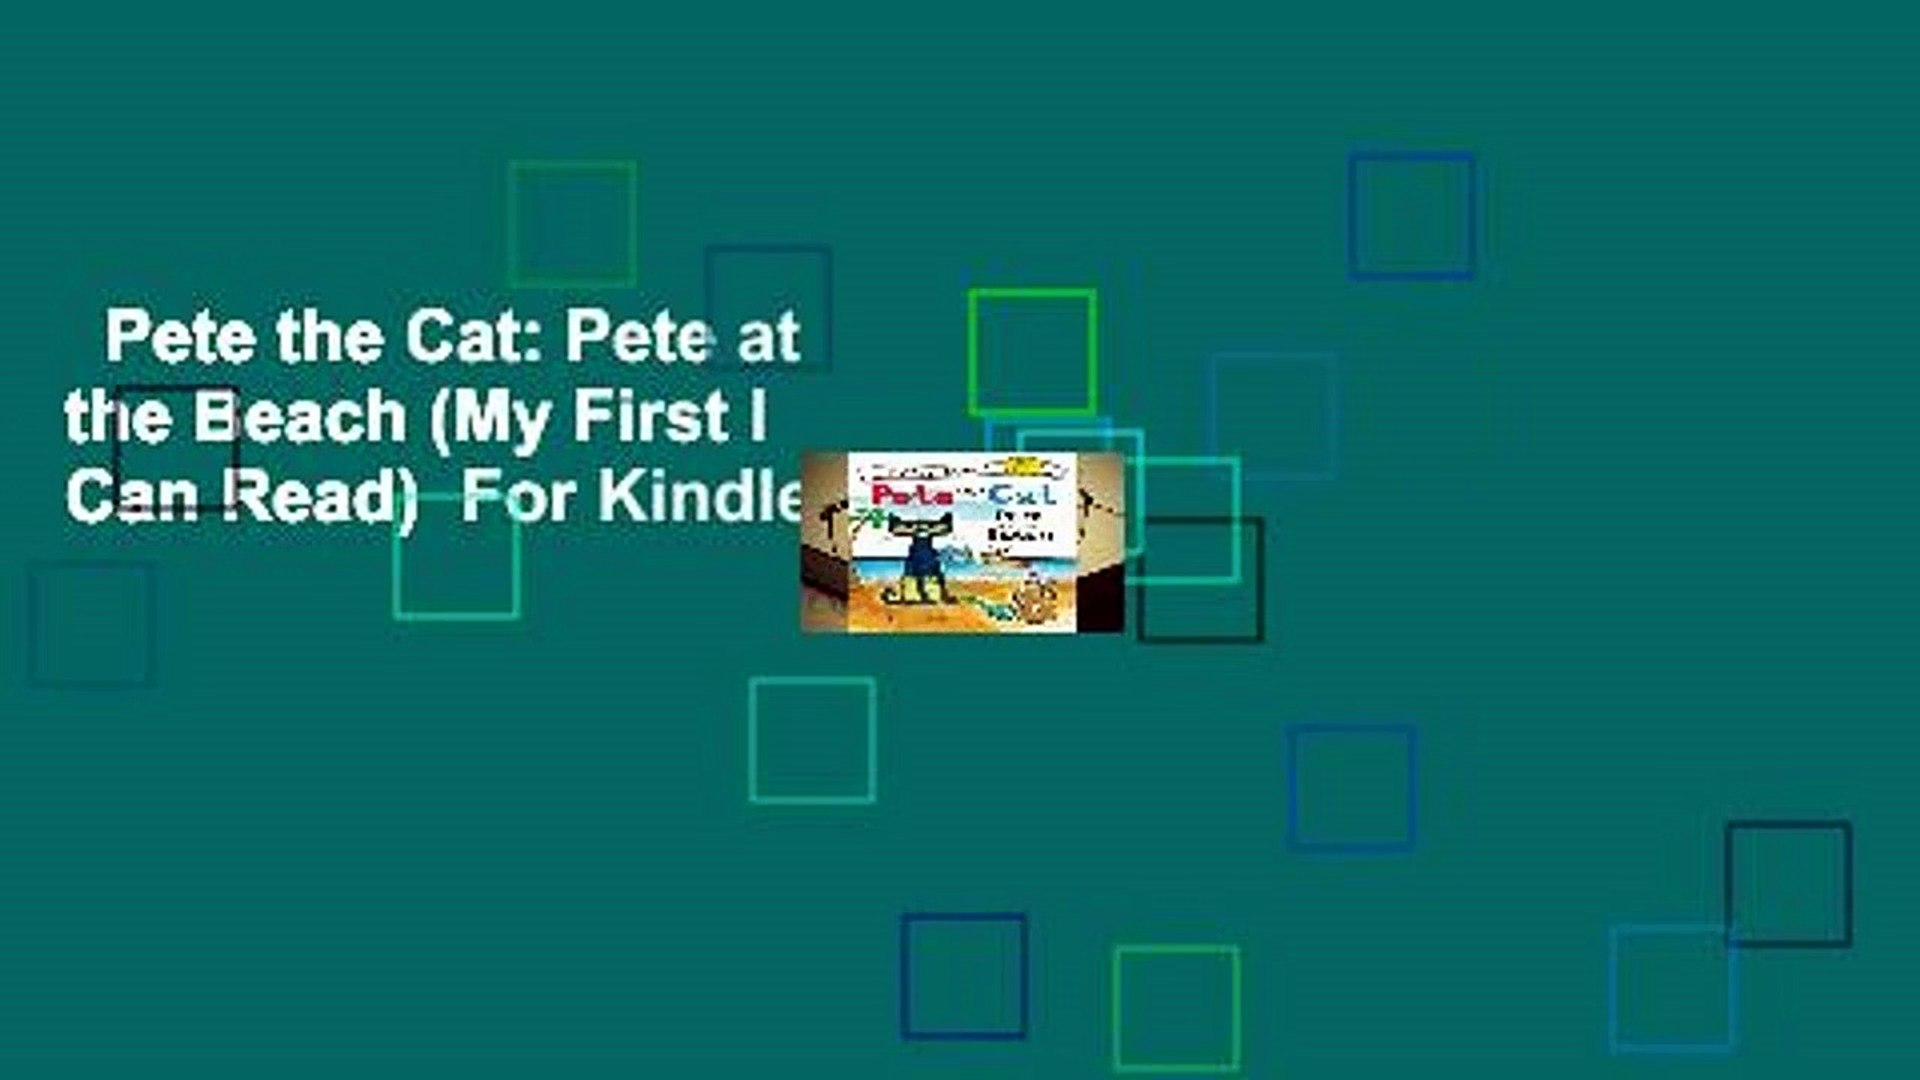 Pete the Cat: Pete at the Beach (My First I Can Read)  For Kindle